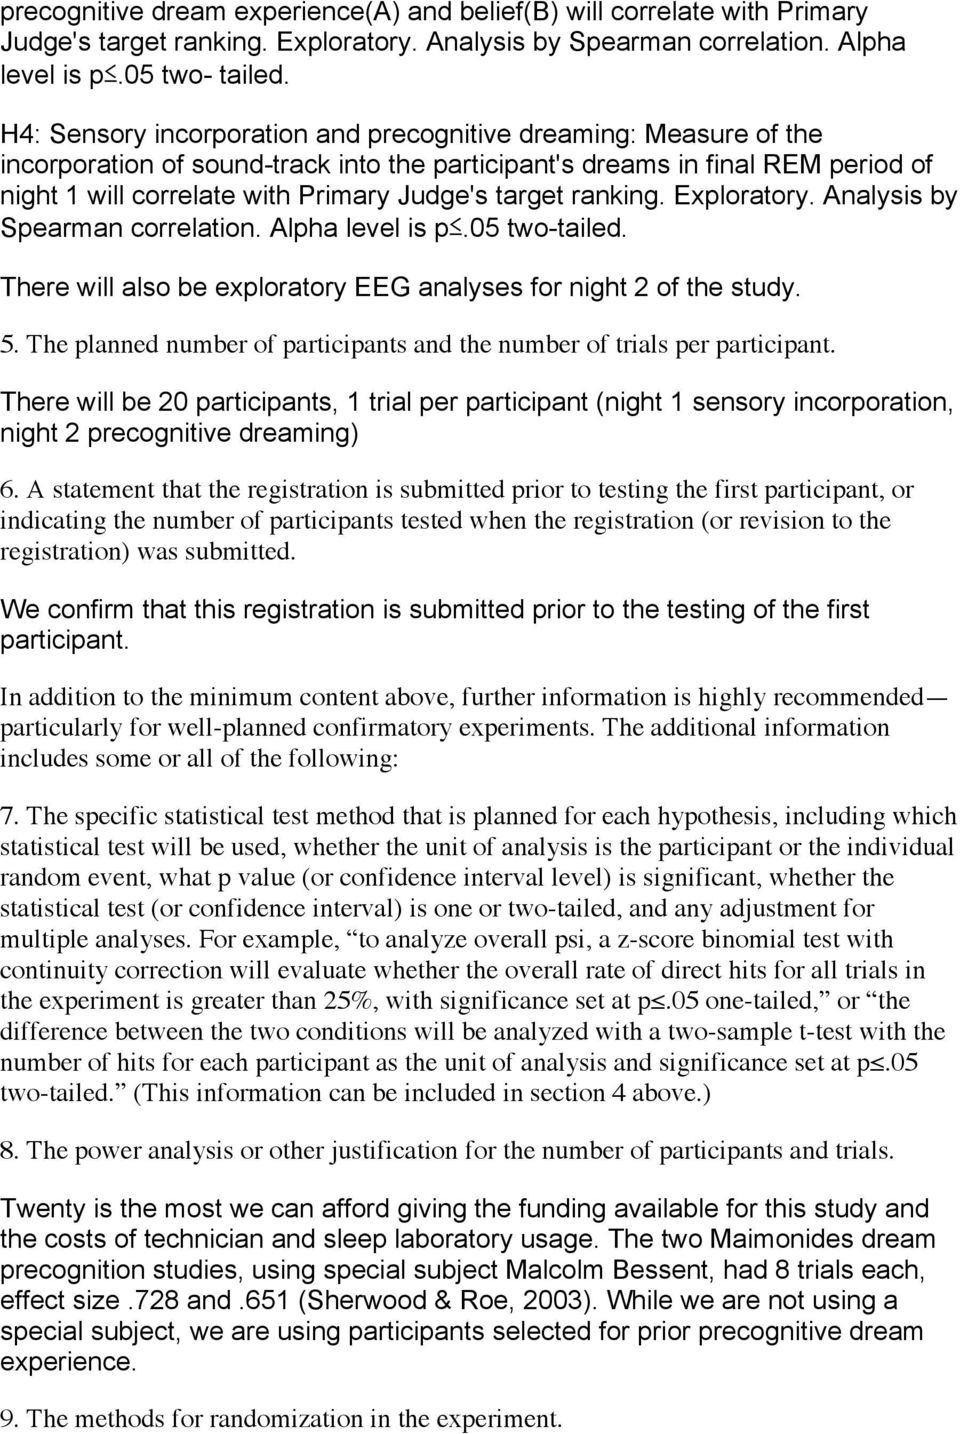 target ranking. Exploratory. Analysis by Spearman correlation. Alpha level is p.05 two-tailed. There will also be exploratory EEG analyses for night 2 of the study. 5.